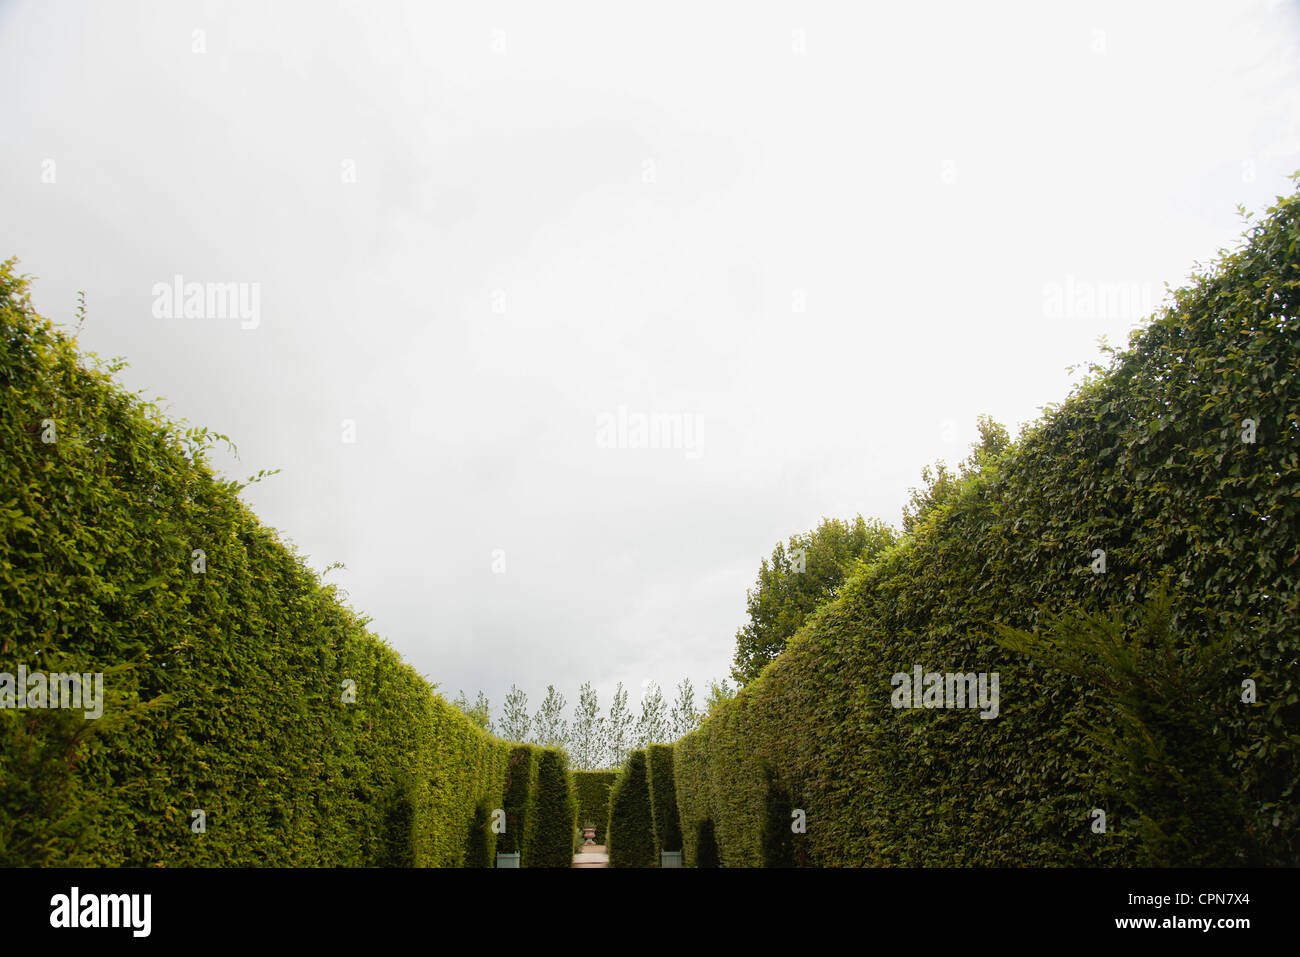 Tall hedges in garden - Stock Image